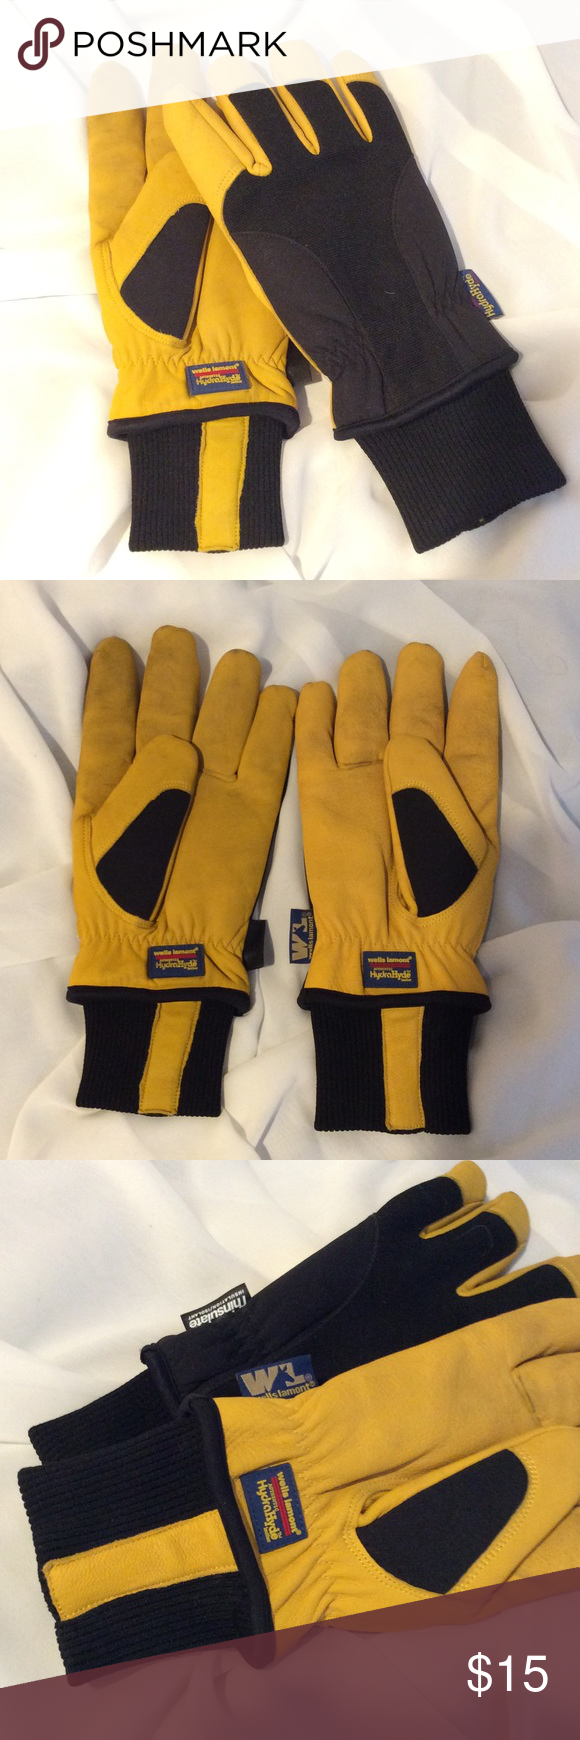 Very mens gloves - A Lot Of People Use These For Ski Gloves Because They Are So Warm Ribbed Cuffs Keep The Cold Out Size Men S Xl Used Very Little With No Rips Or